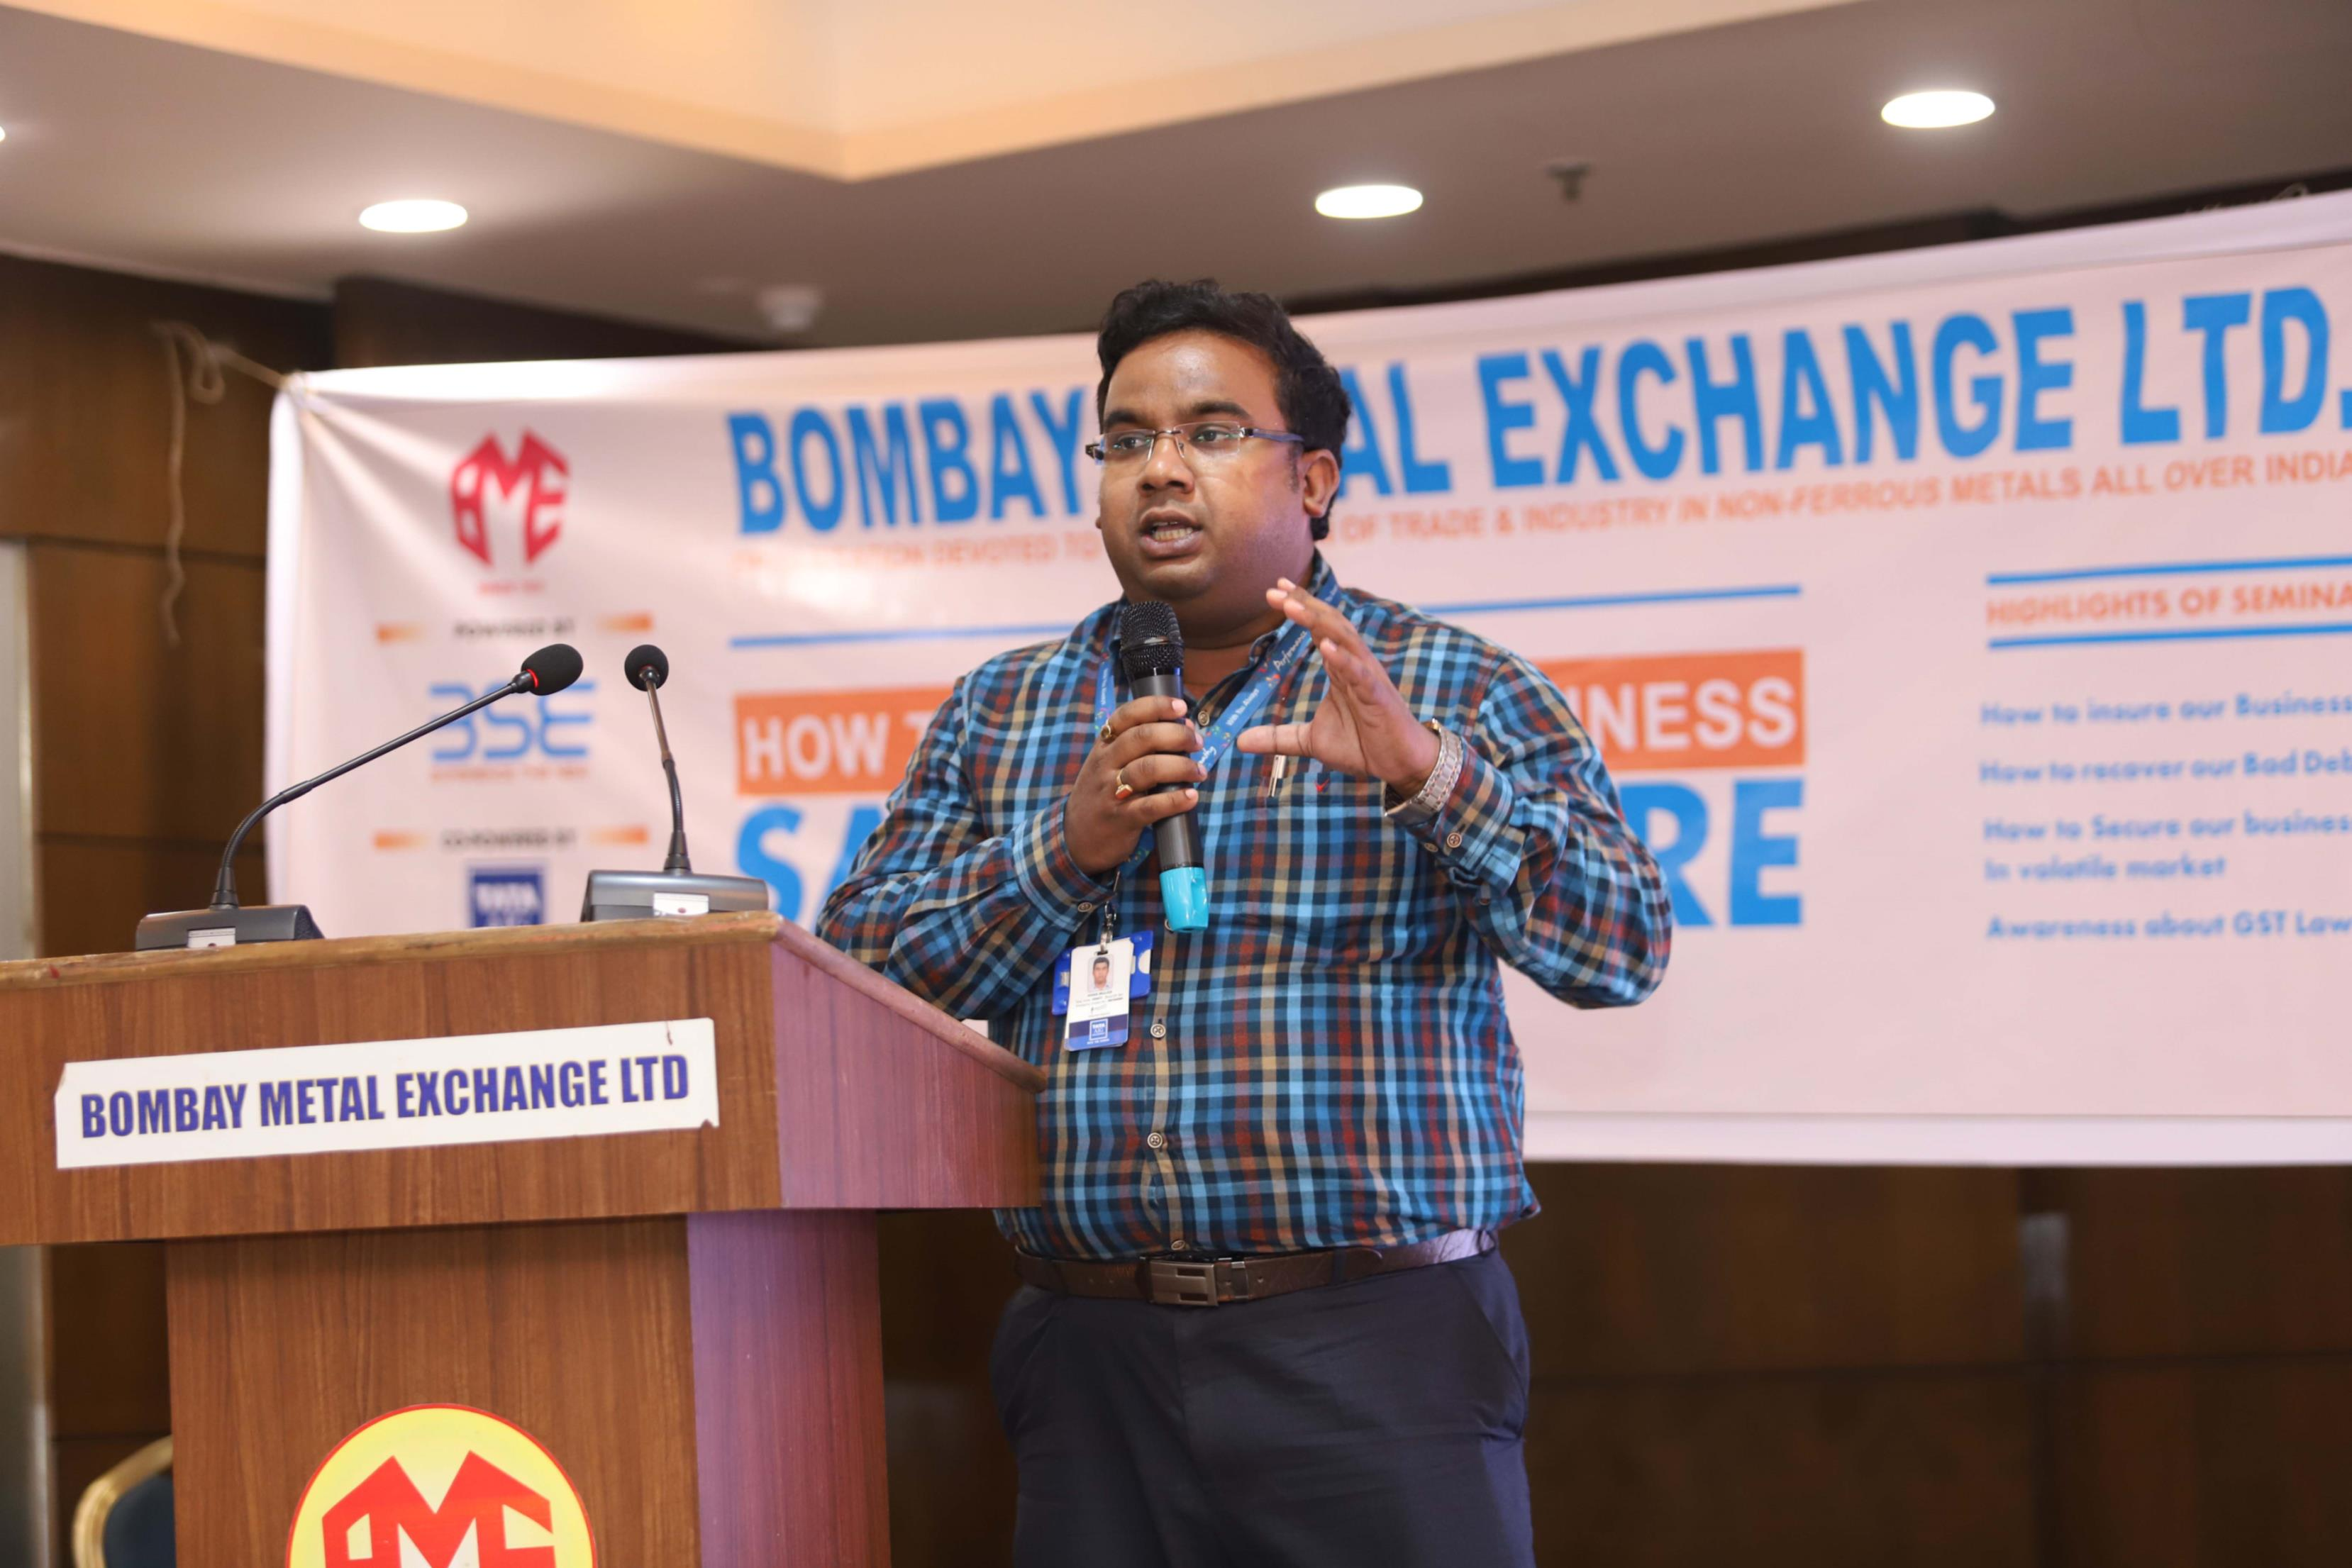 Seminar How to make Business Safe & Secure